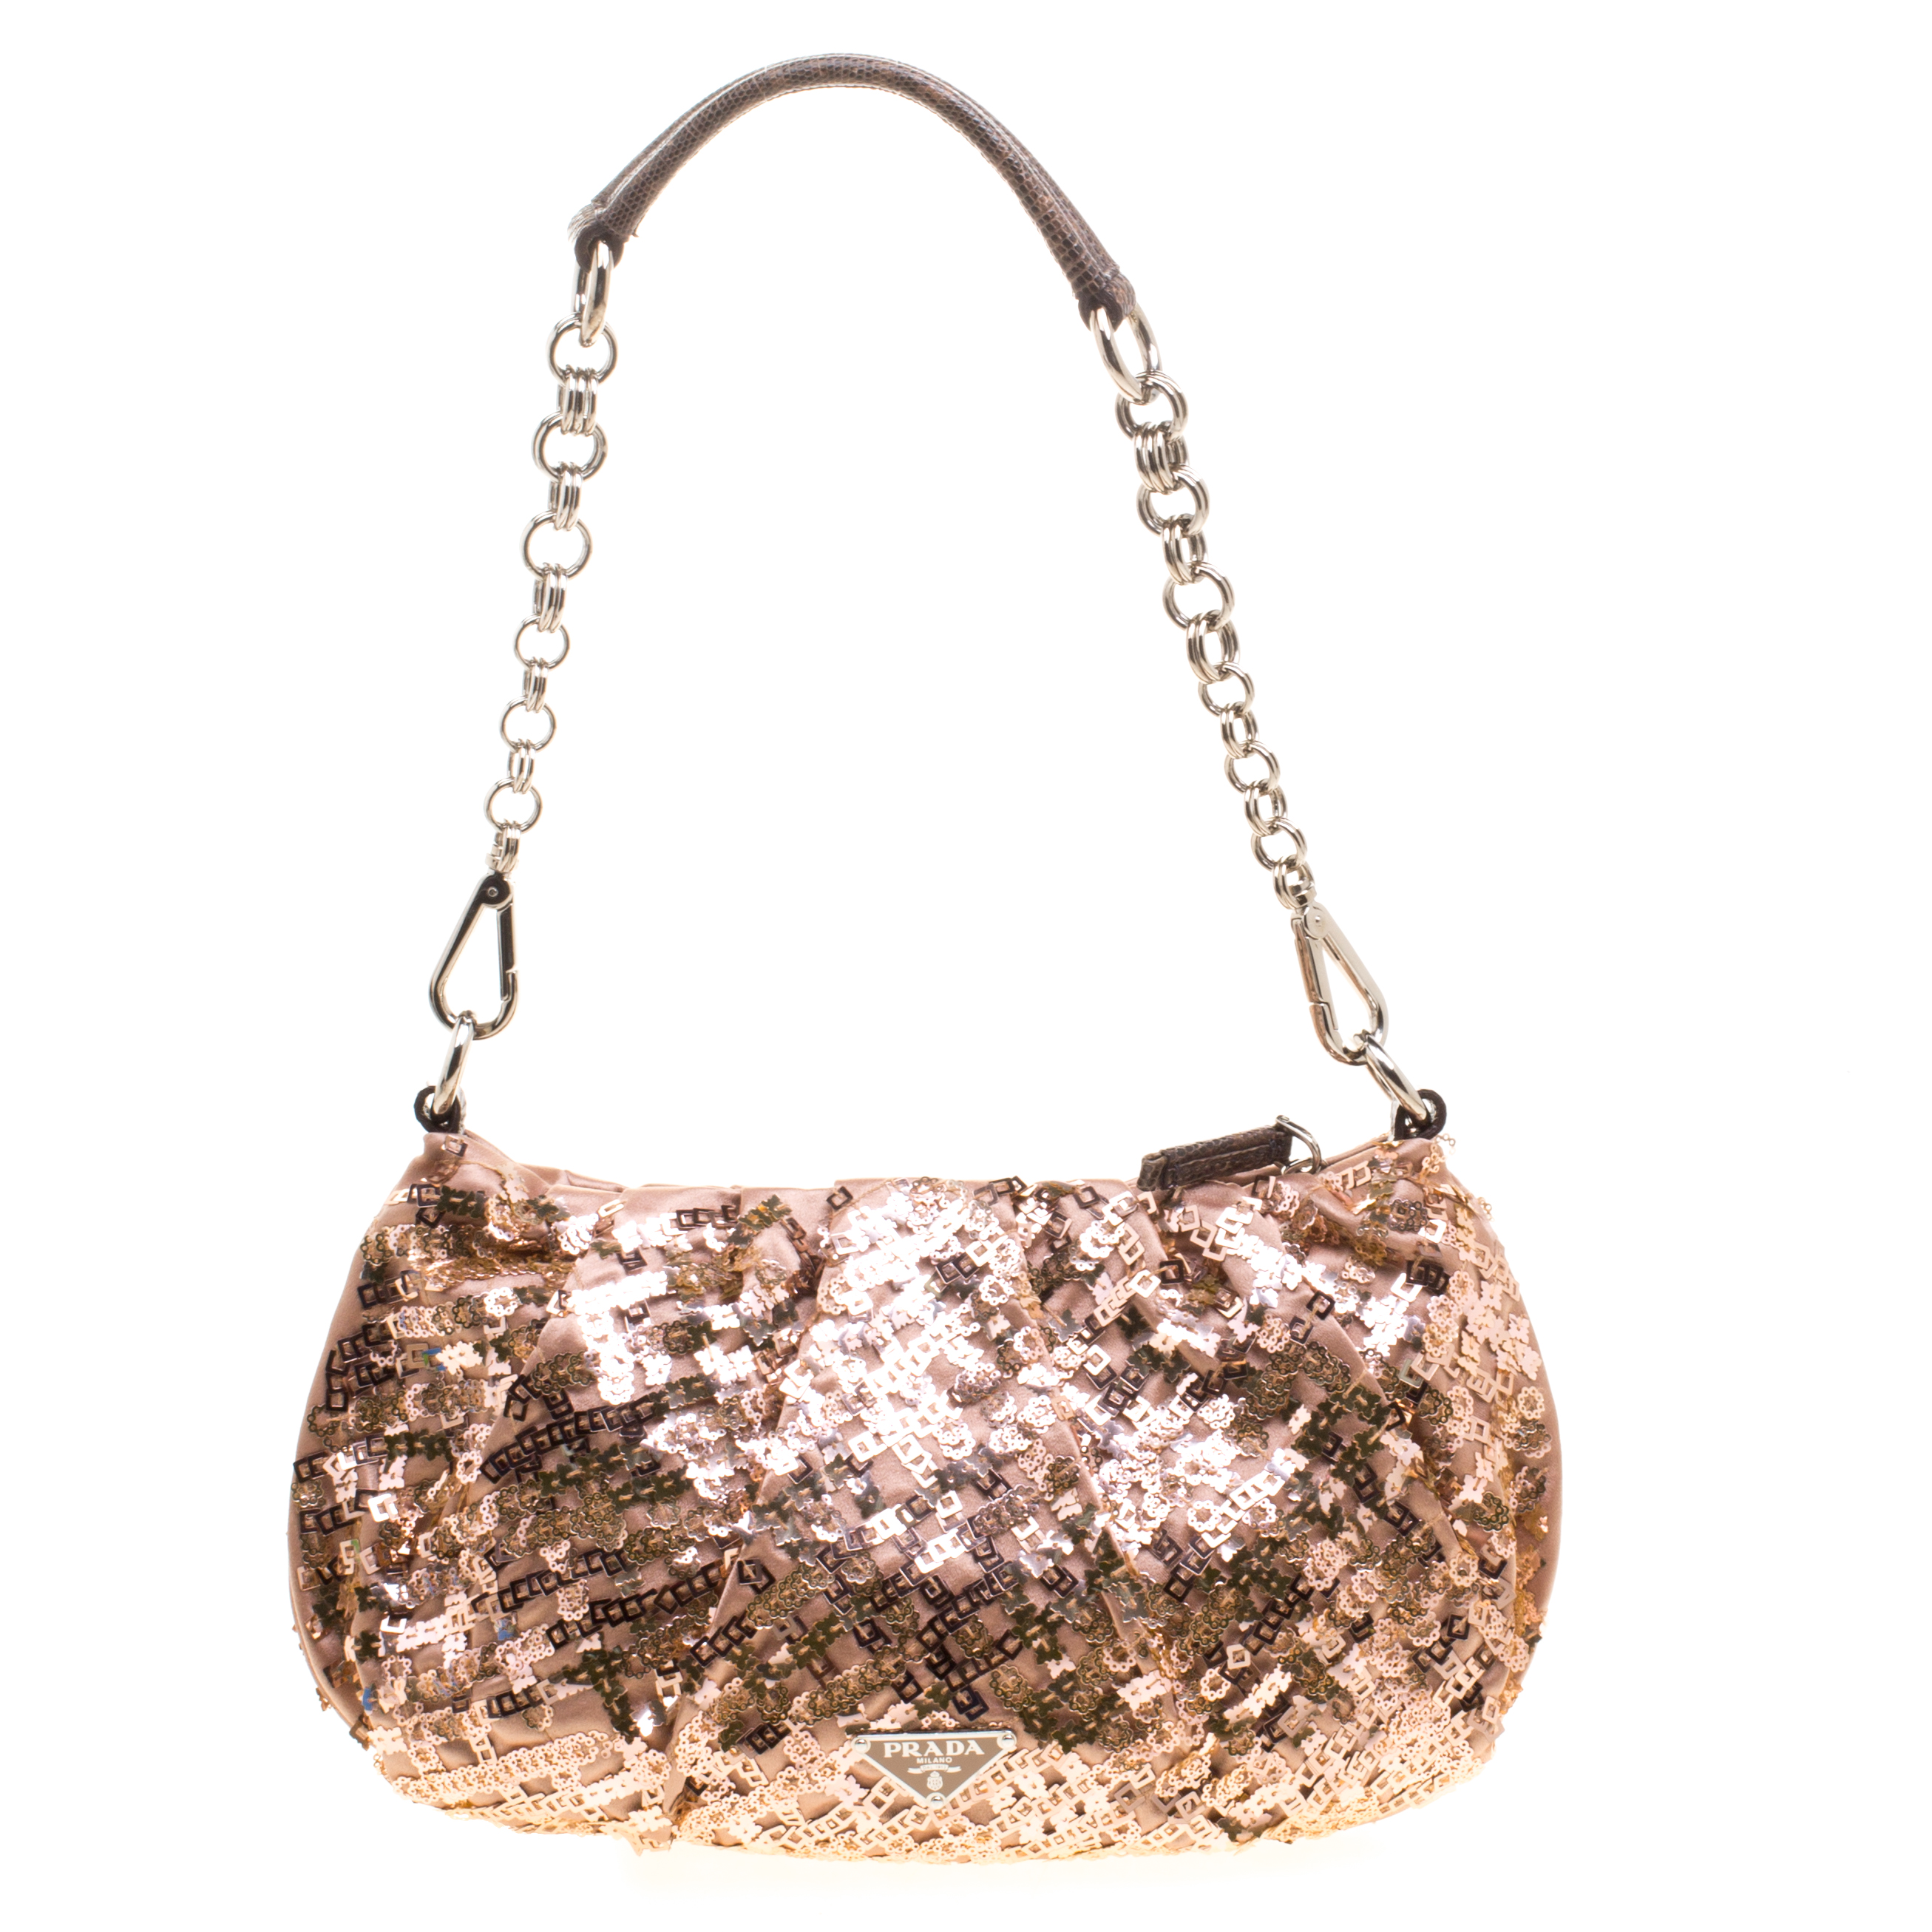 Prada Blush Pink Bronze Satin Sequin